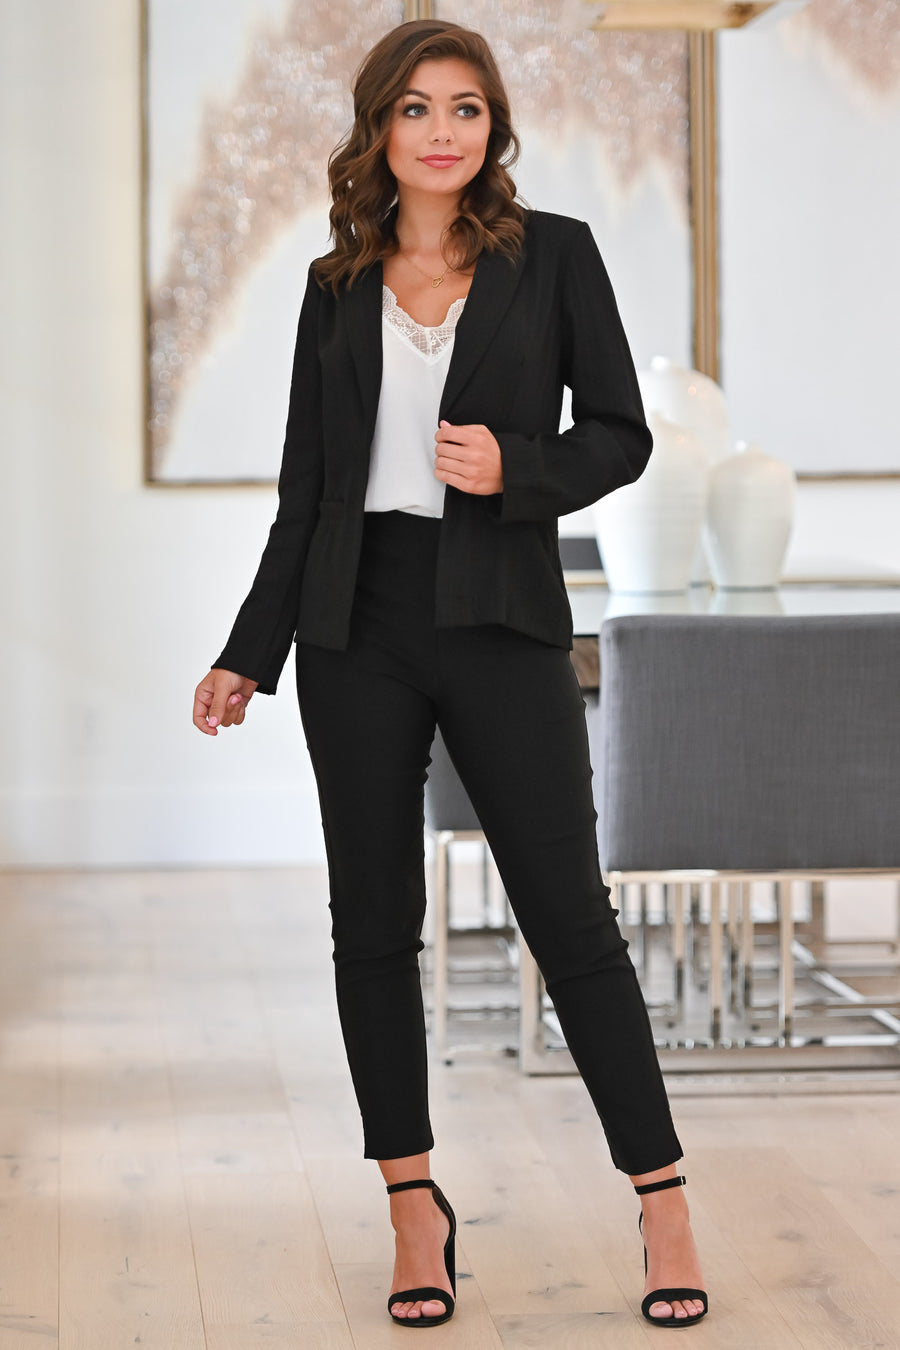 Watch Out World Blazer - Black womens trendy button front long sleeve blazer closet candy front; Model: Hannah Sluss